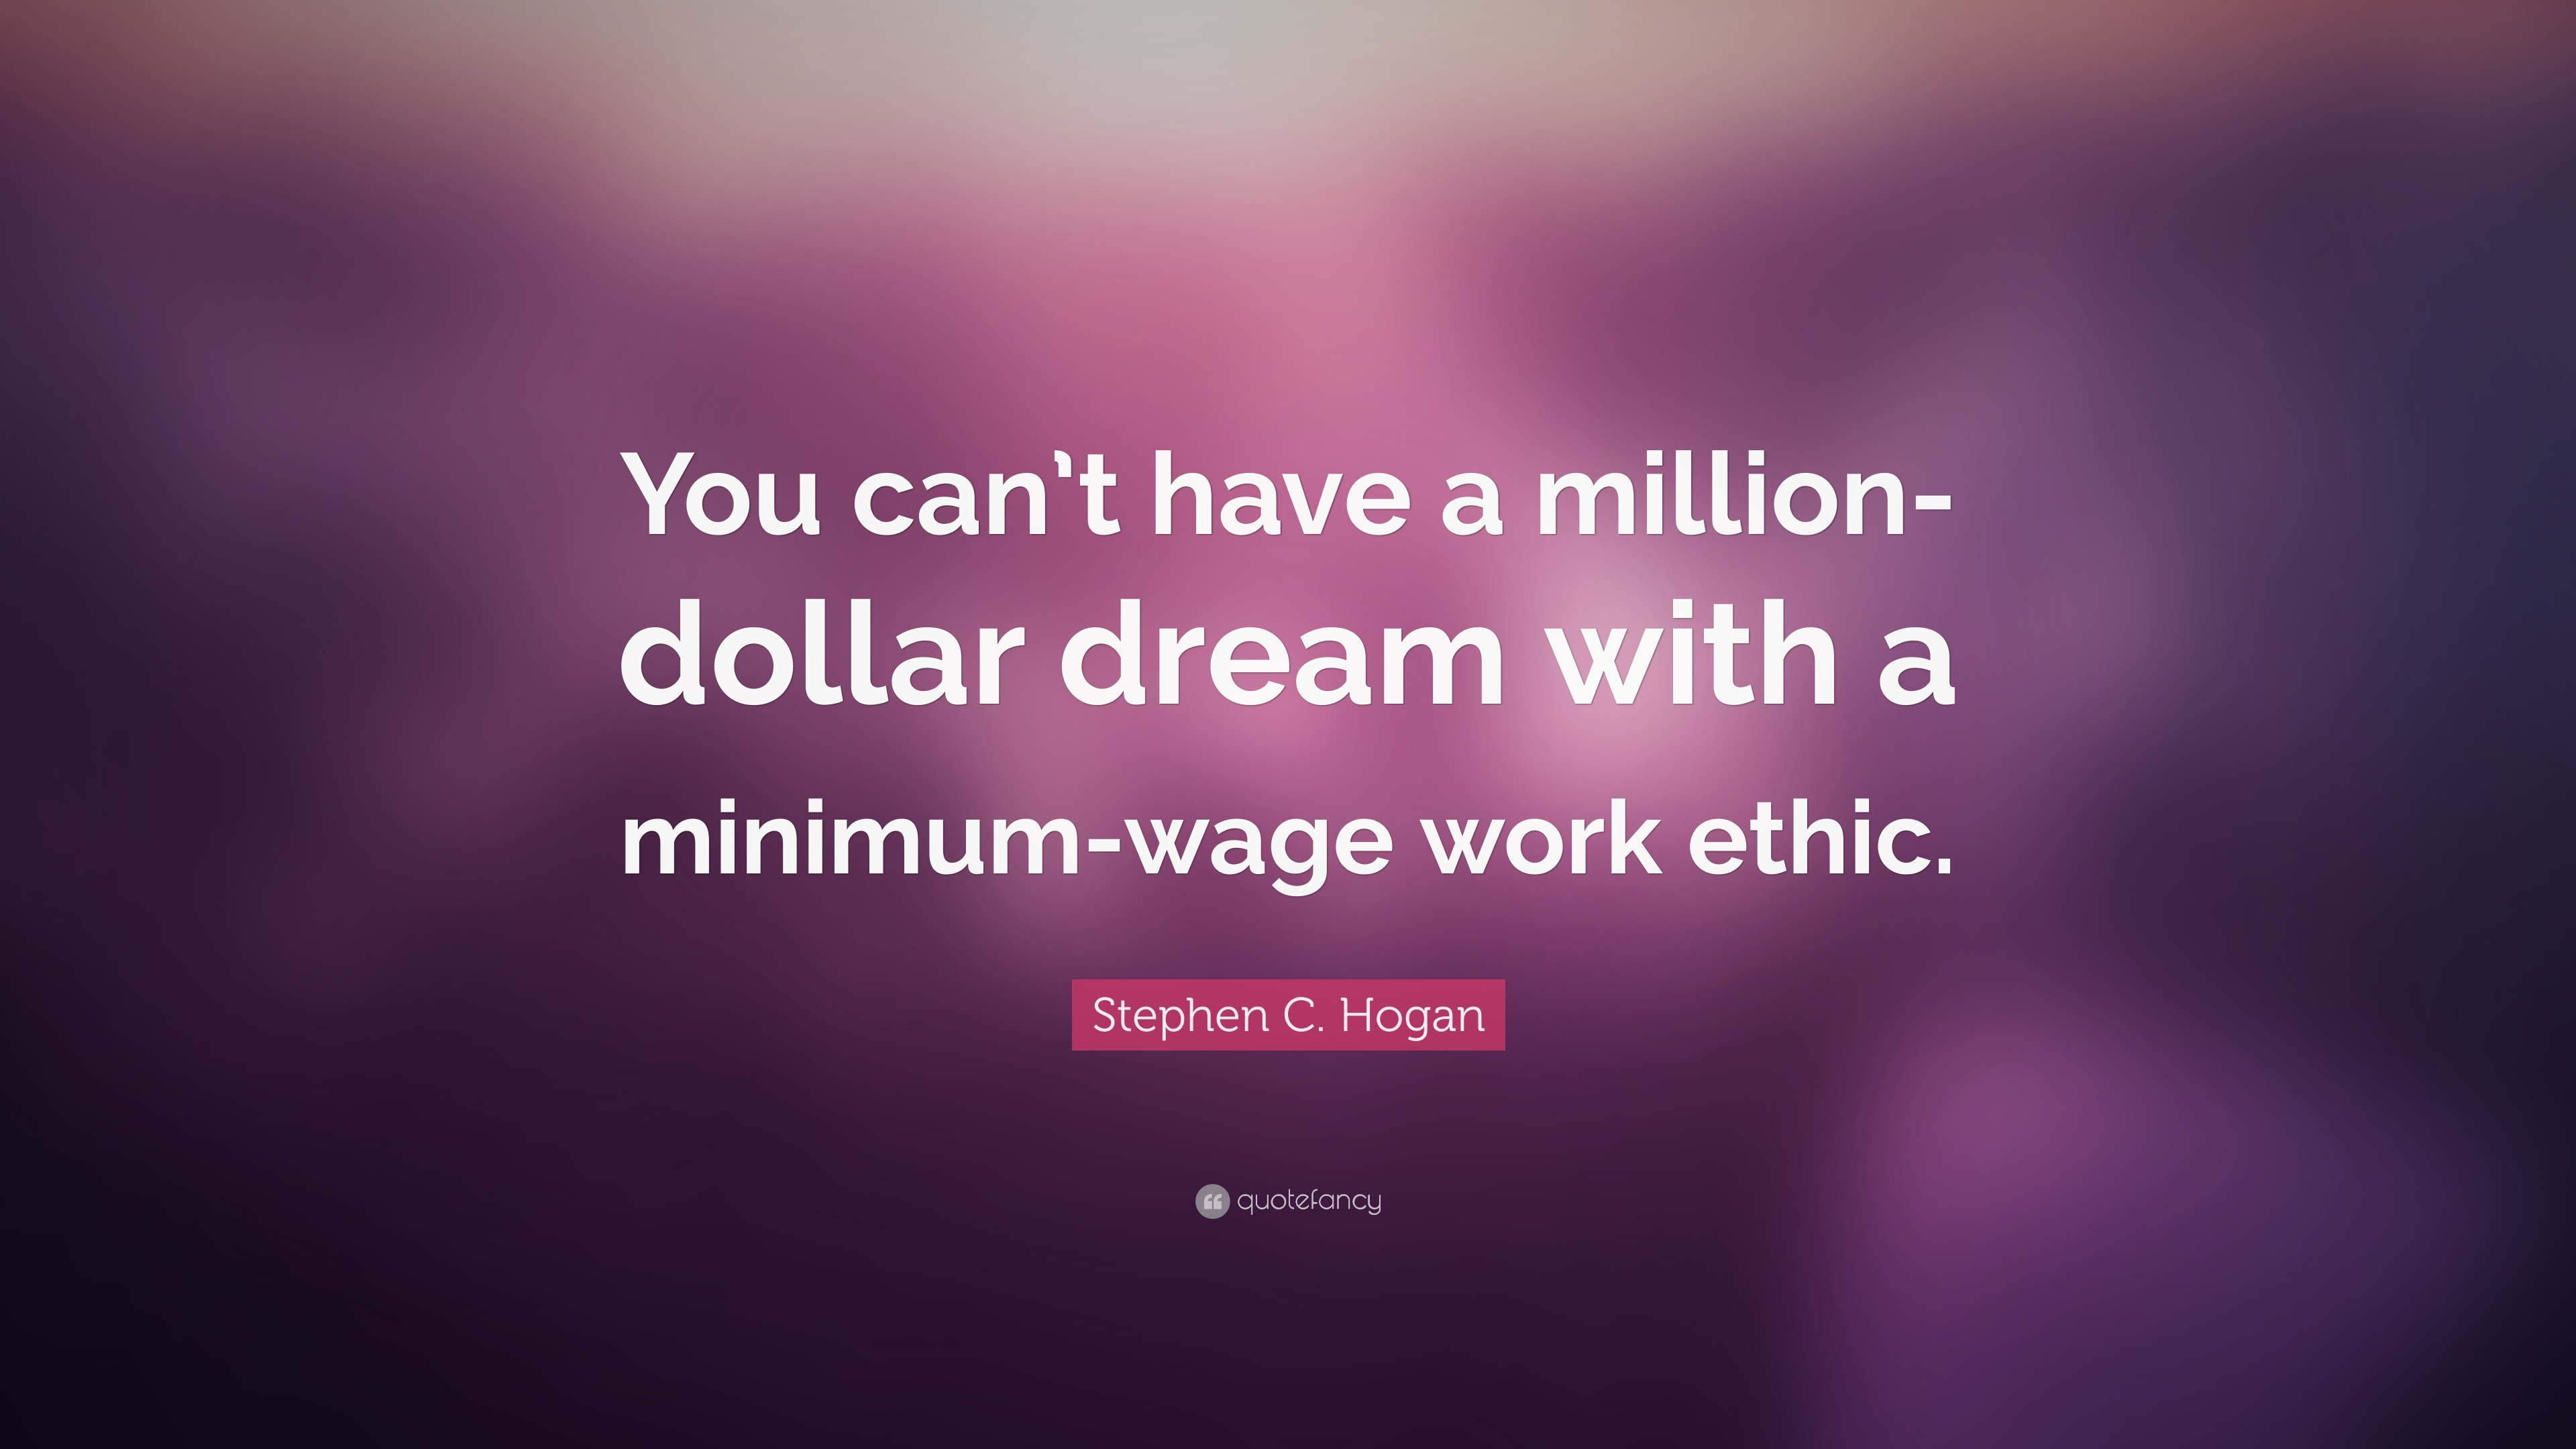 stephen c hogan quote you can t have a million dollar dream stephen c hogan quote you can t have a million dollar